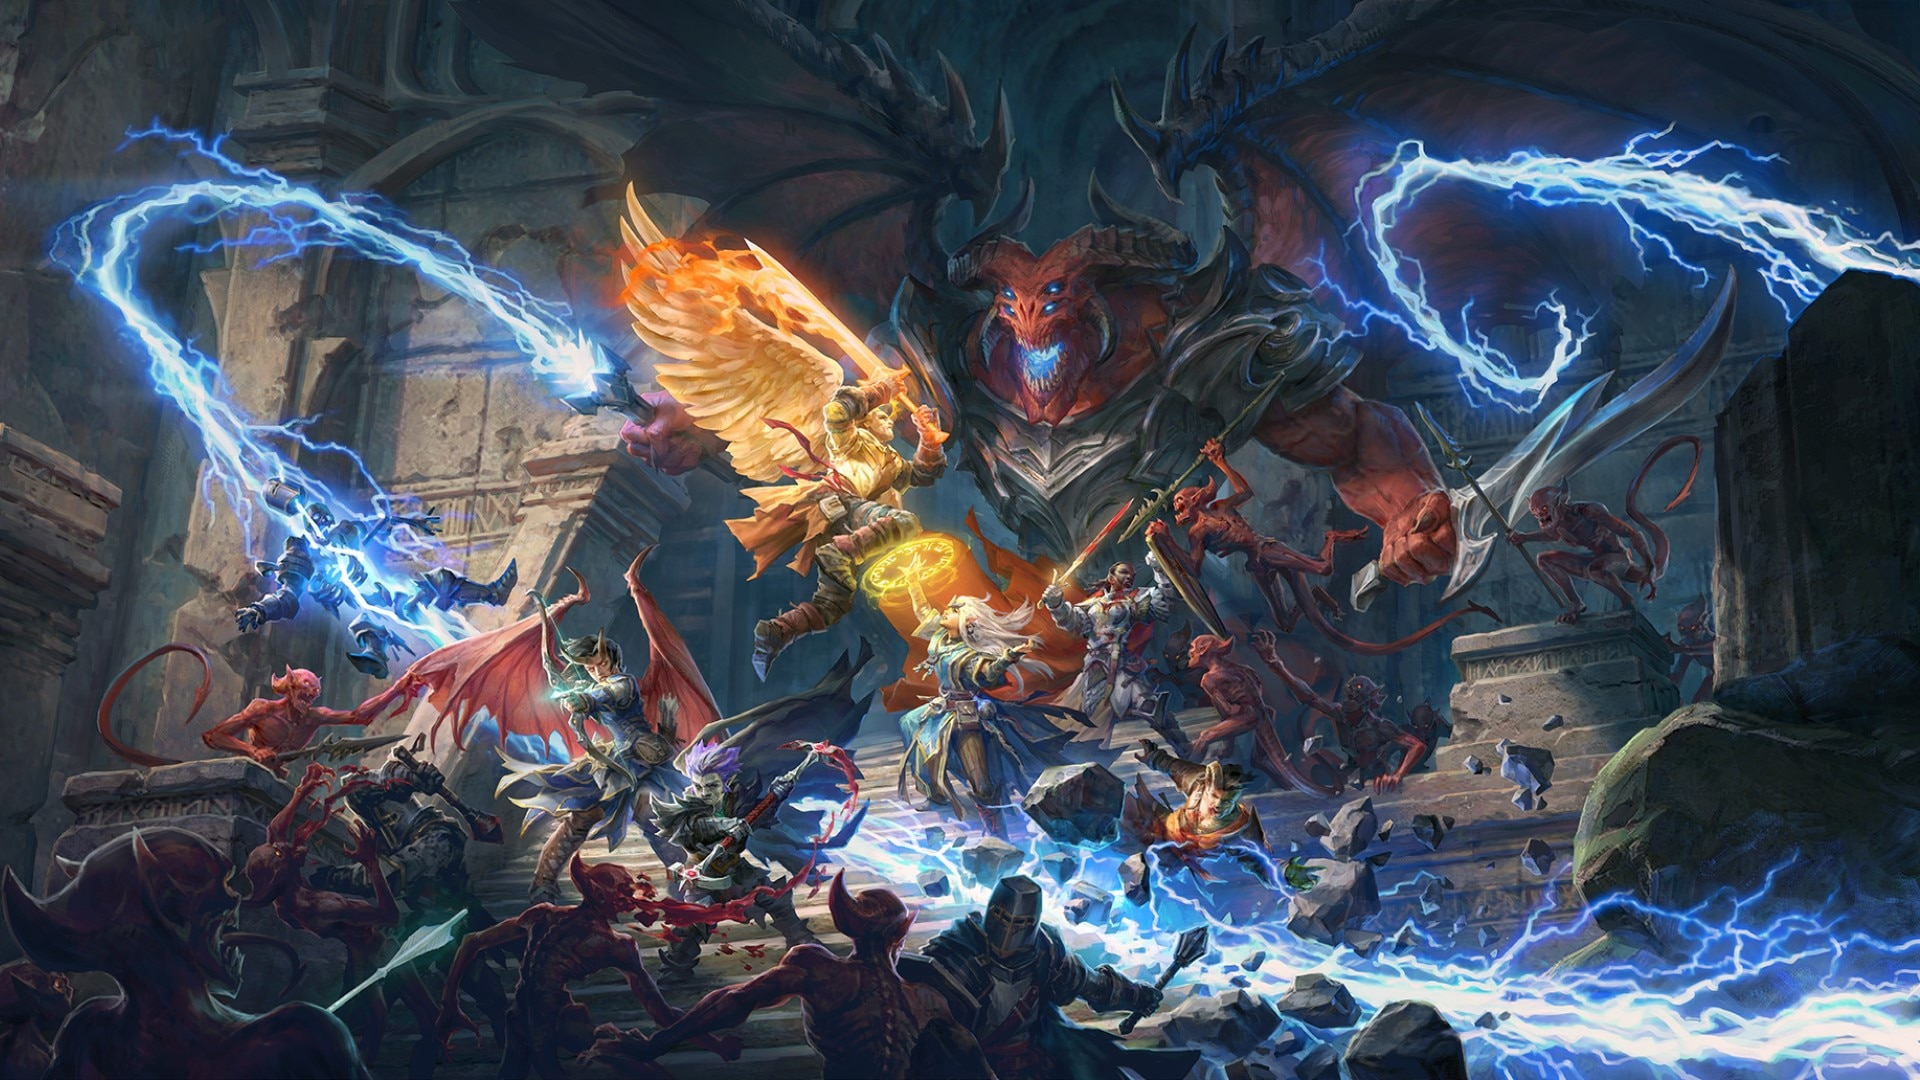 Pathfinder Wrath of the Righteous - PATHFINDER: WRATHER OF THE RIGHTEOUS REACHES $1M ON KICKSTARTER, MORE STRETCH GOALS TO COME